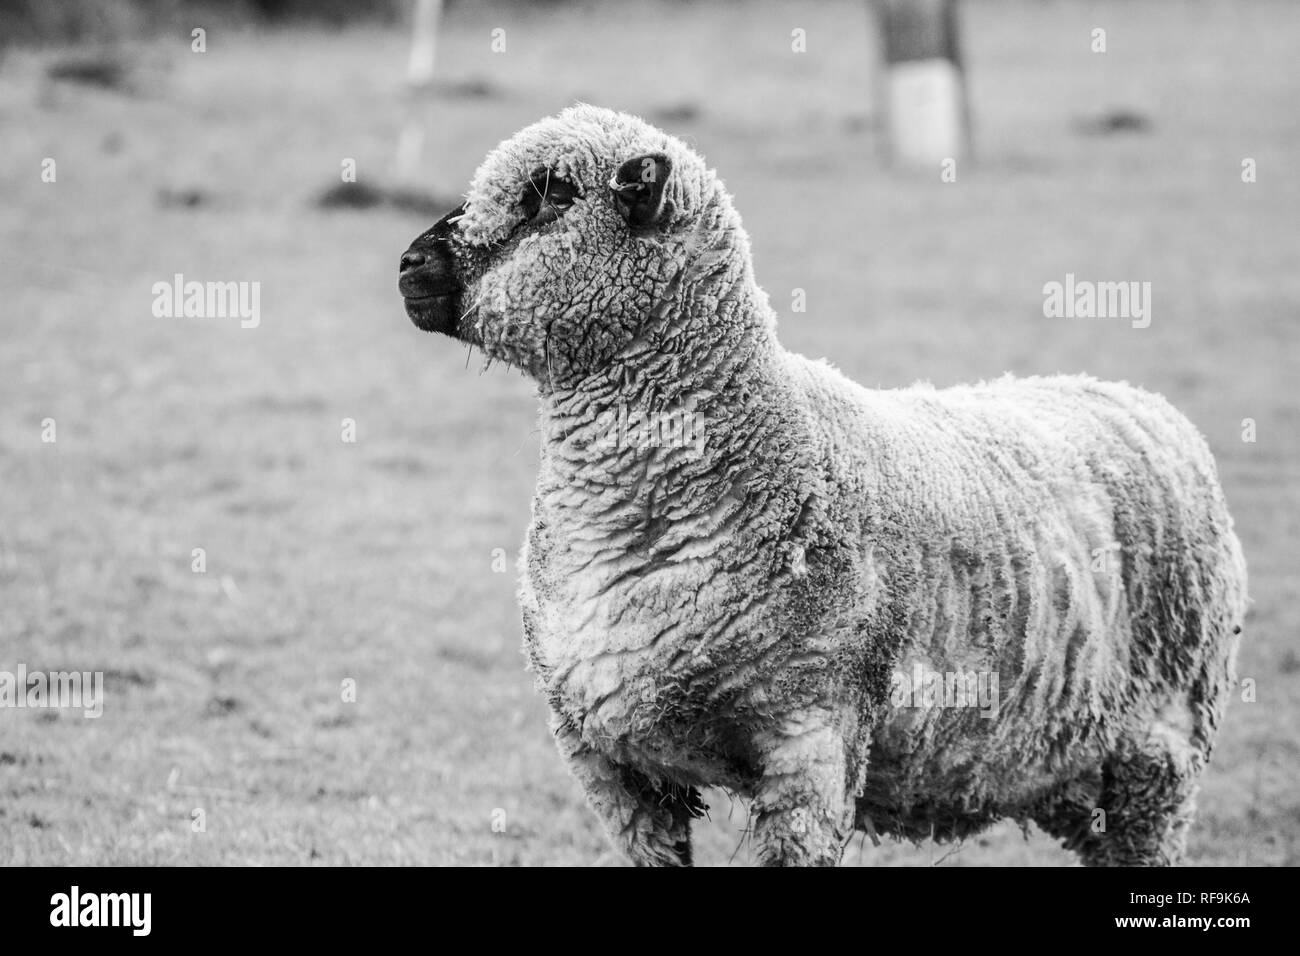 sheep standing in a field in black and white, sheep standing alone looking to the left hand side of the shot during the daytime, no people - Stock Image